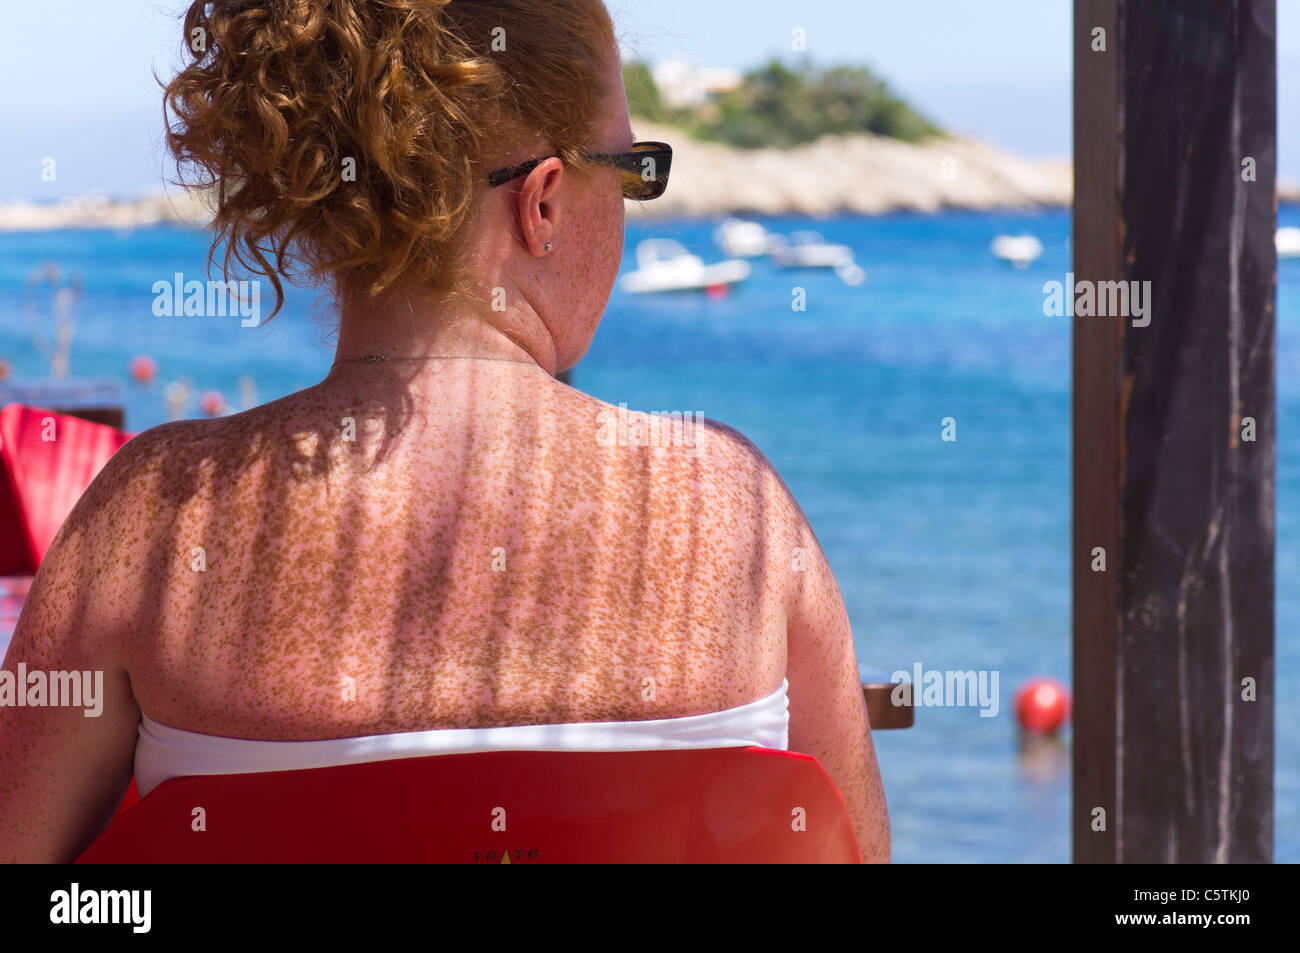 Ibiza, Balearics, Spain - suntan risks - woman with fair Northern skin ginger hair and freckles sitting in partial - Stock Image